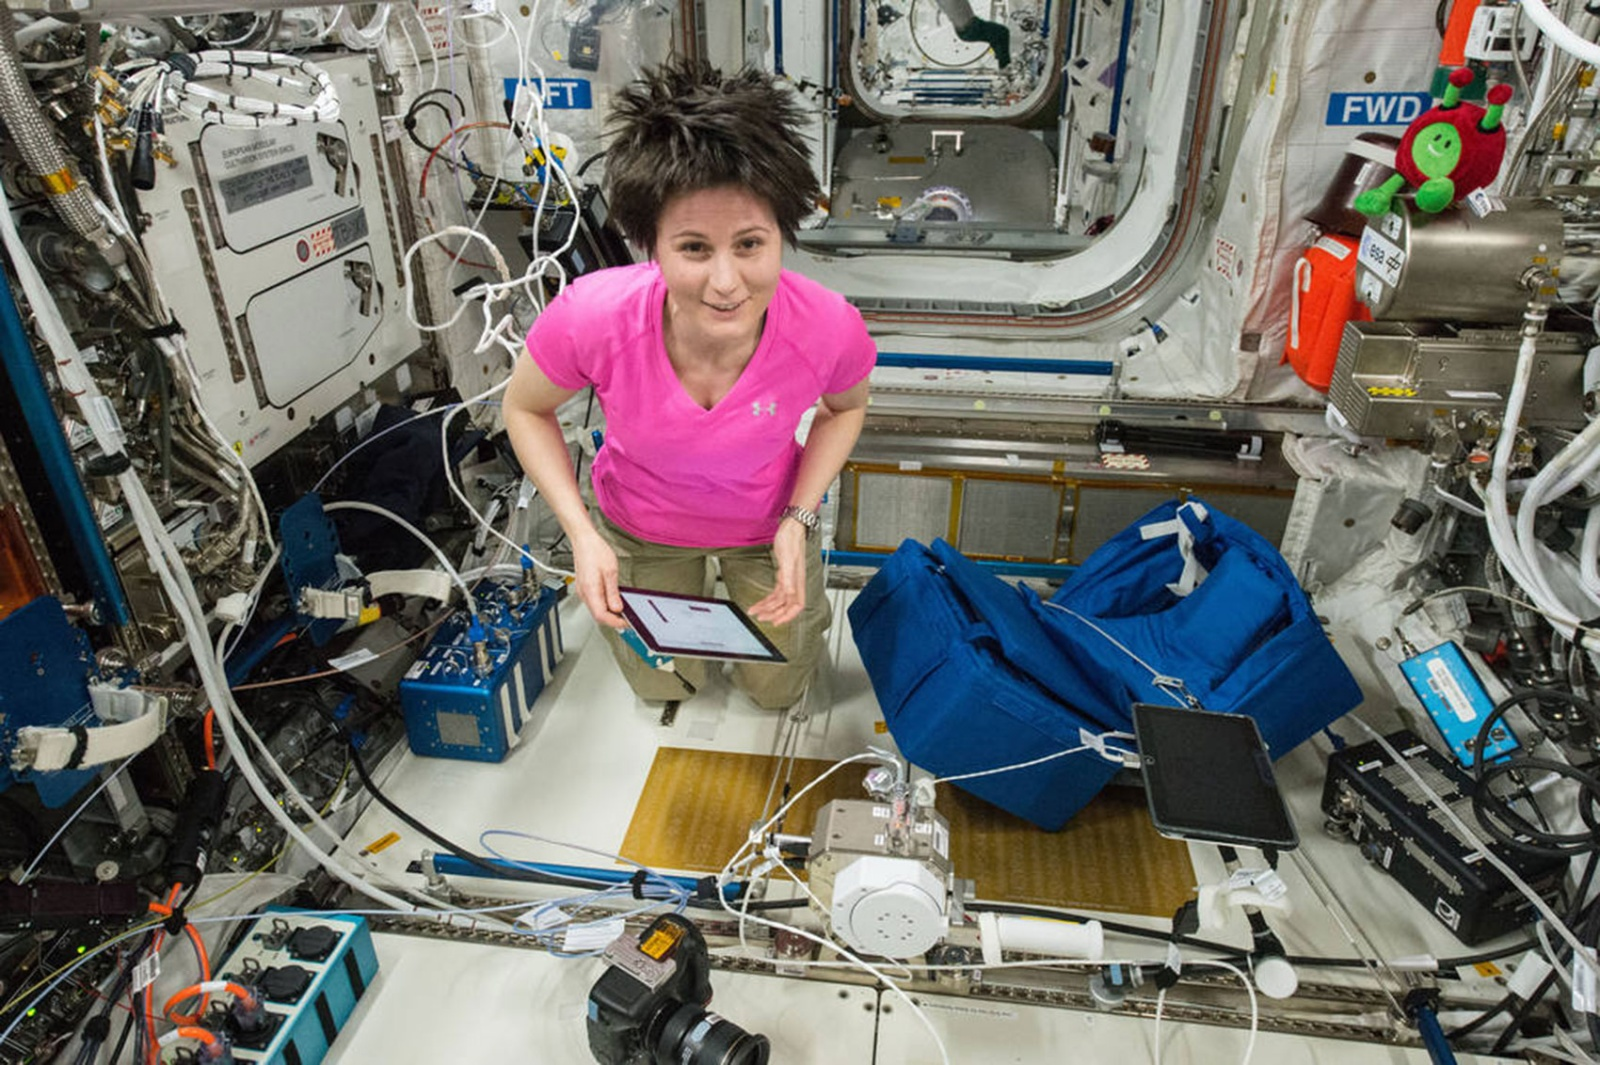 ESA astronaut Samantha Cristoforetti worked with iPad during a recent mission on the International Space Station. NASA wants astronauts to start using smartwatches for some of their tasks.